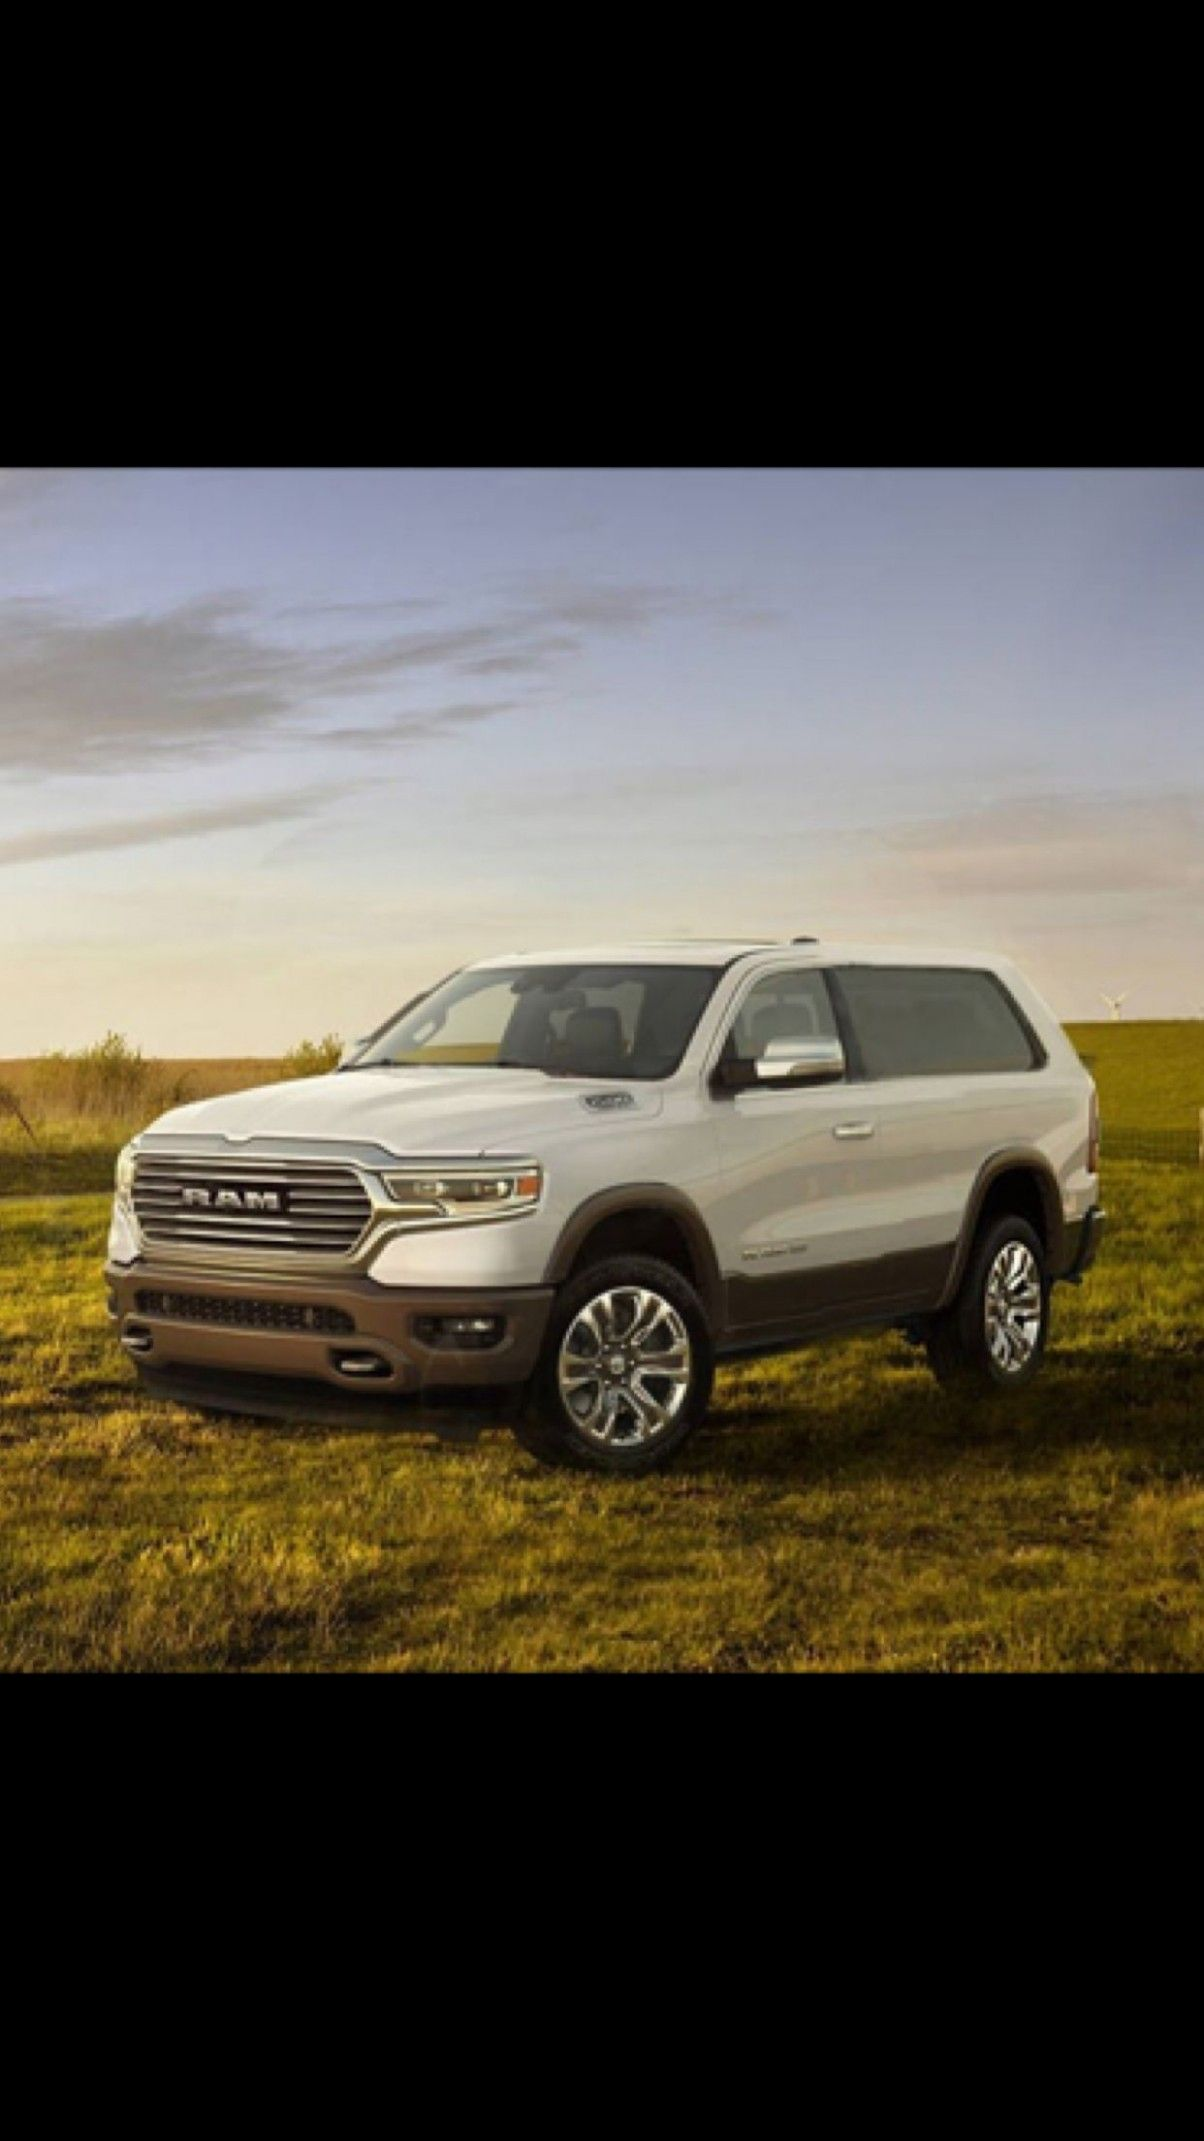 2021 ramcharger with images  dodge suv dodge